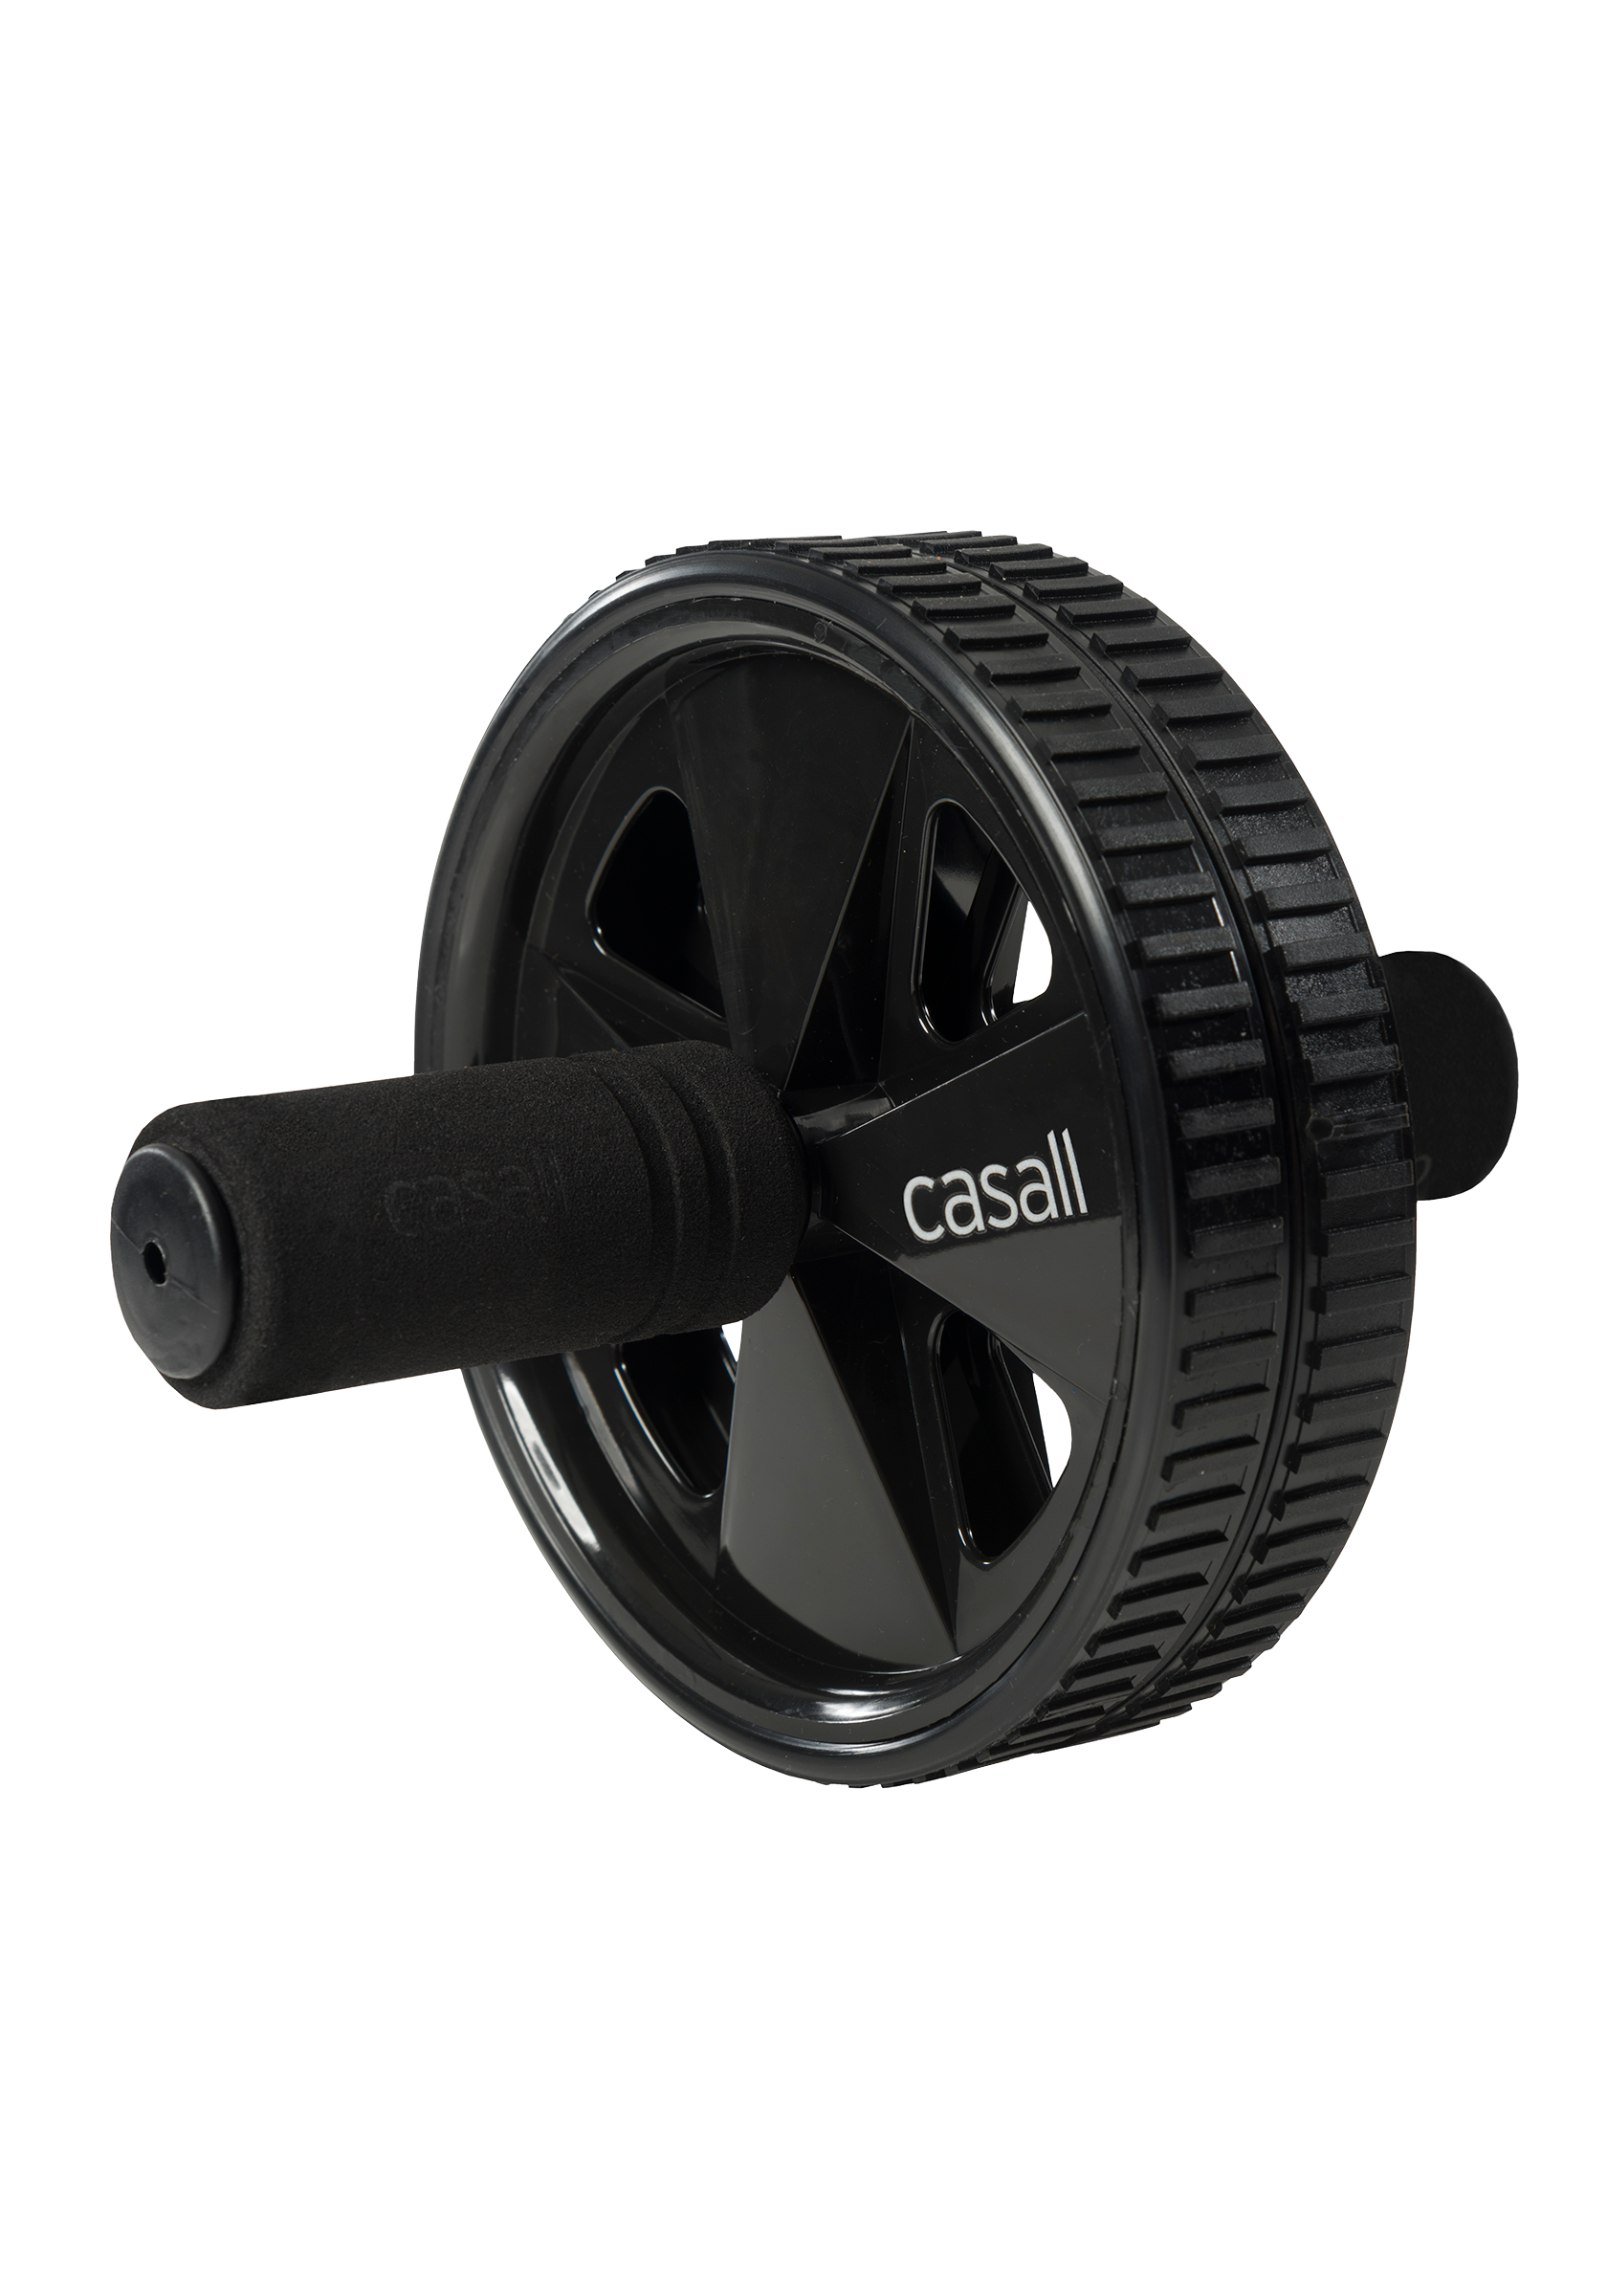 AB Roller Recycled  - Black